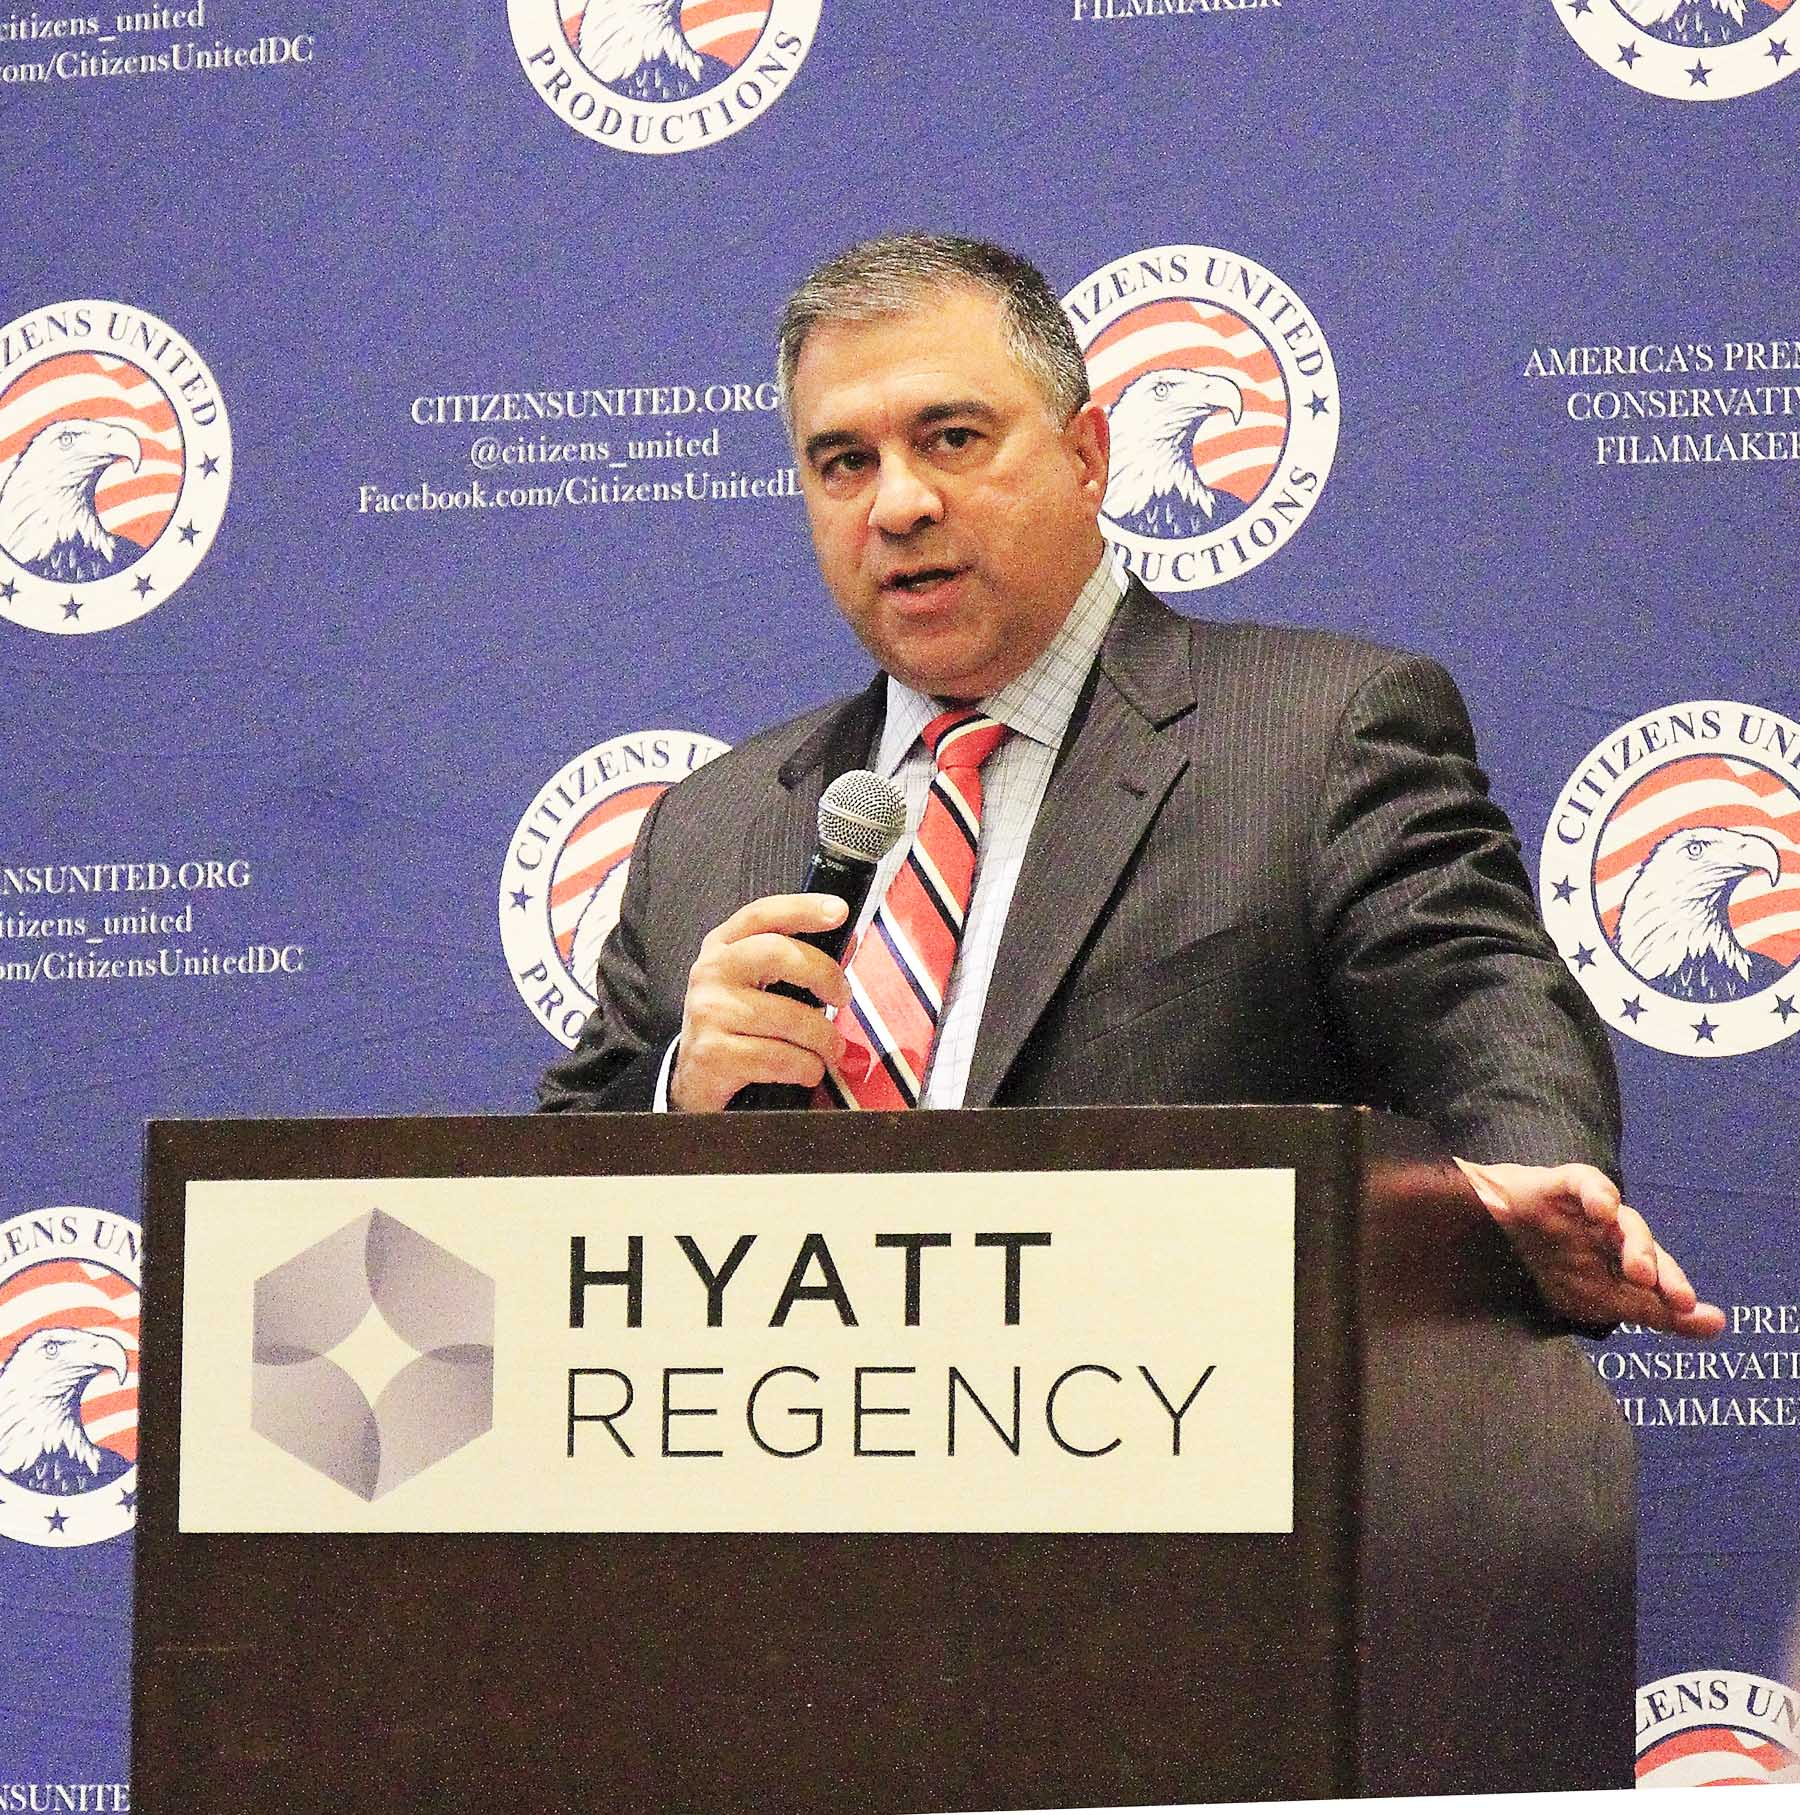 David Bossie, Citizens United